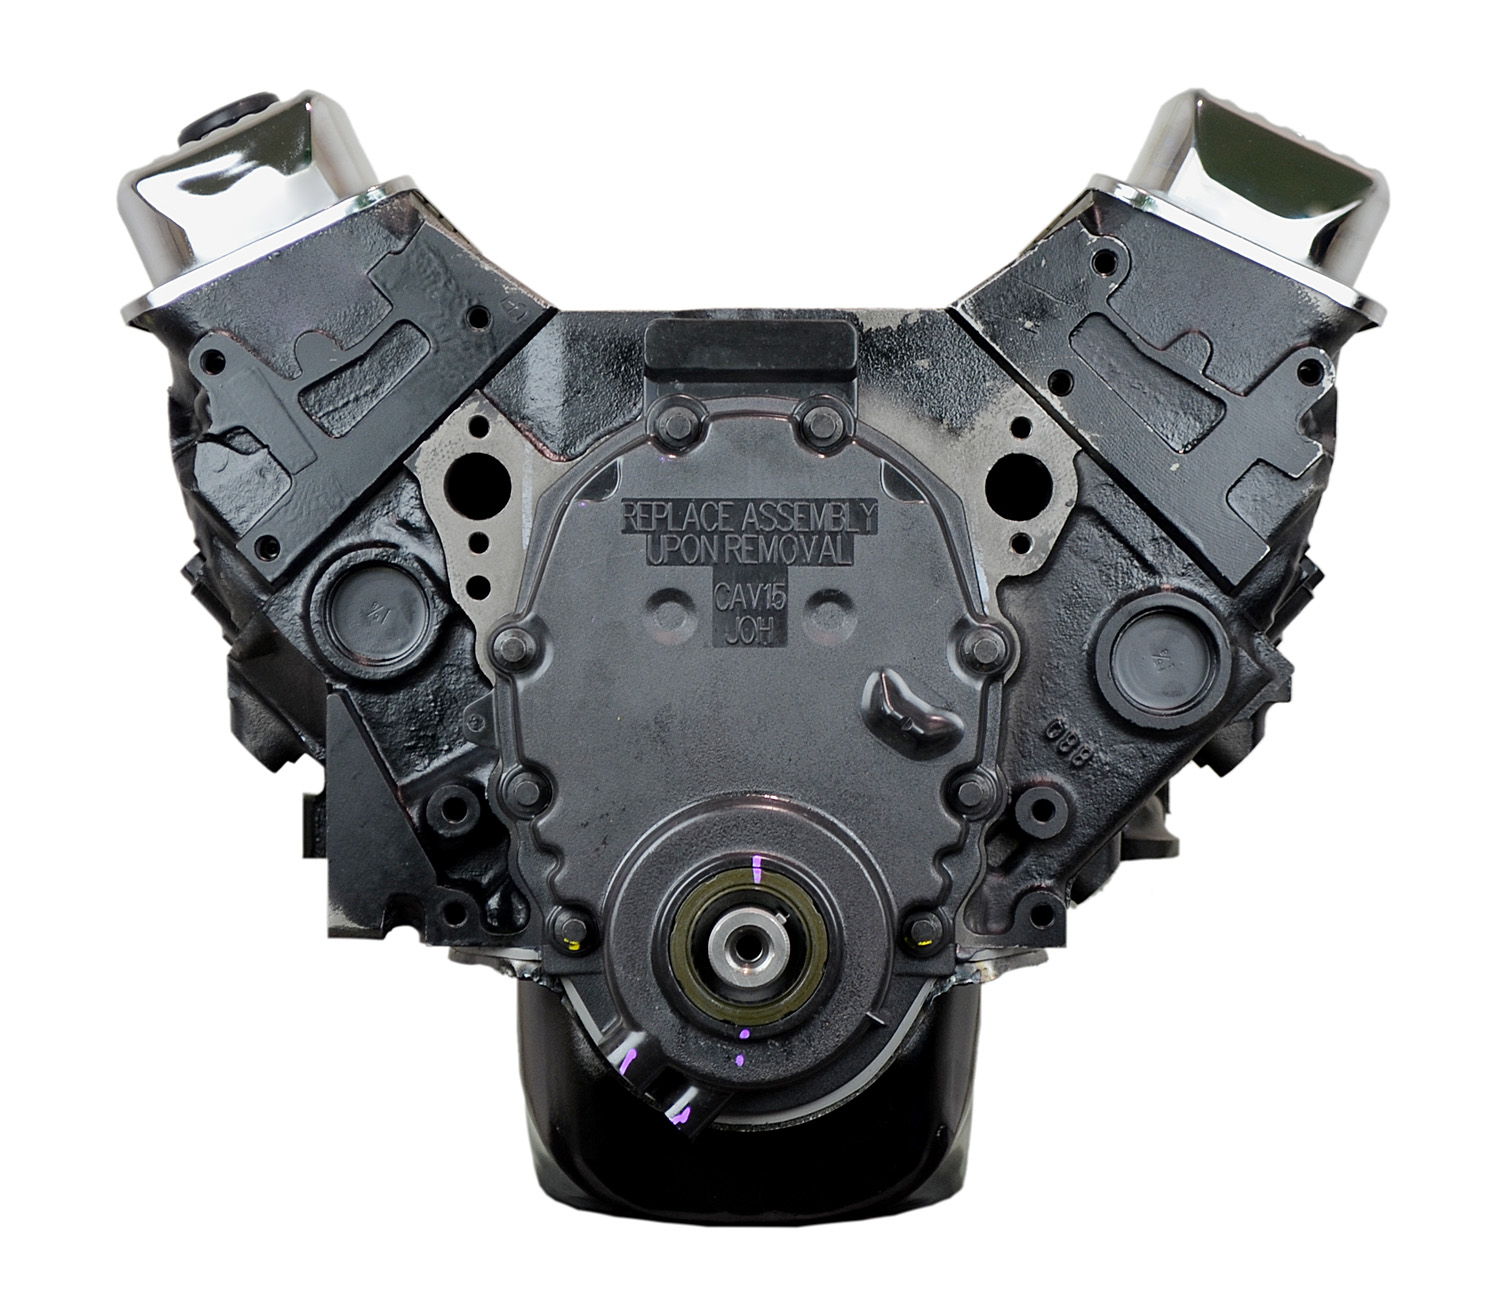 Chevy 350 Vortec HP Engine